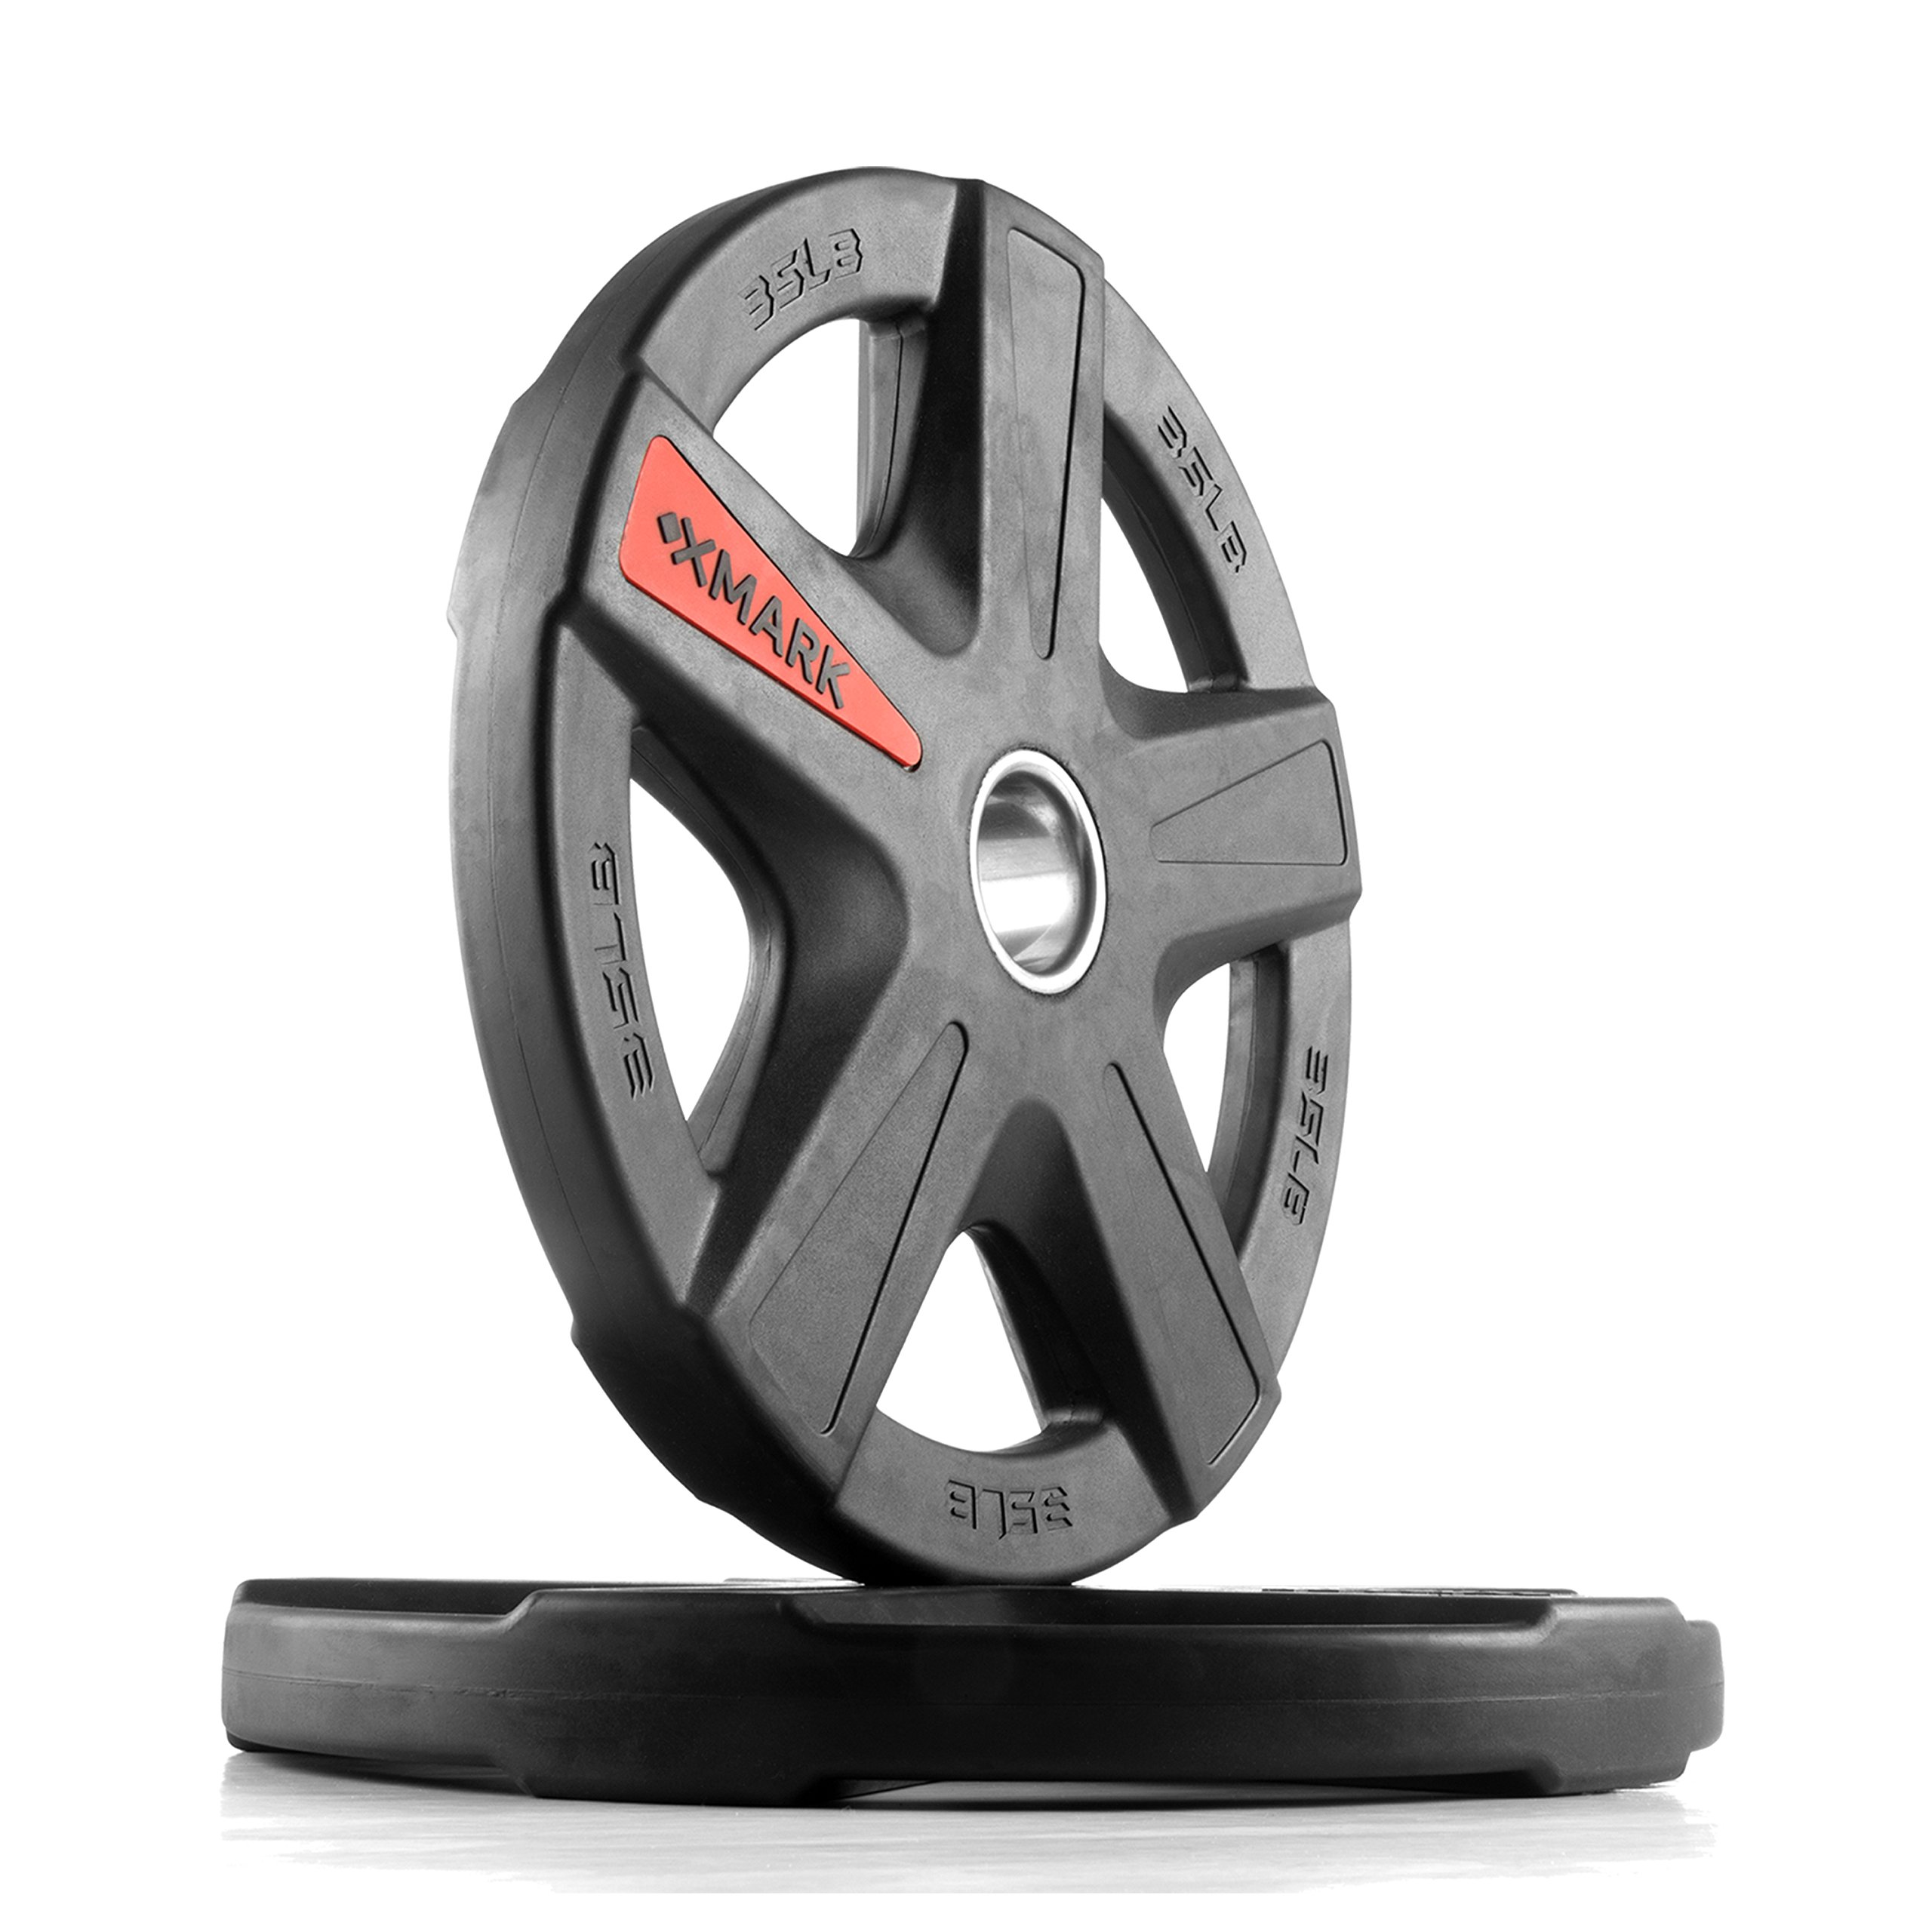 XMark Texas Star 35 lb Pair Olympic Plates, Patented Design, One-Year Warranty, Olympic Weight Plates